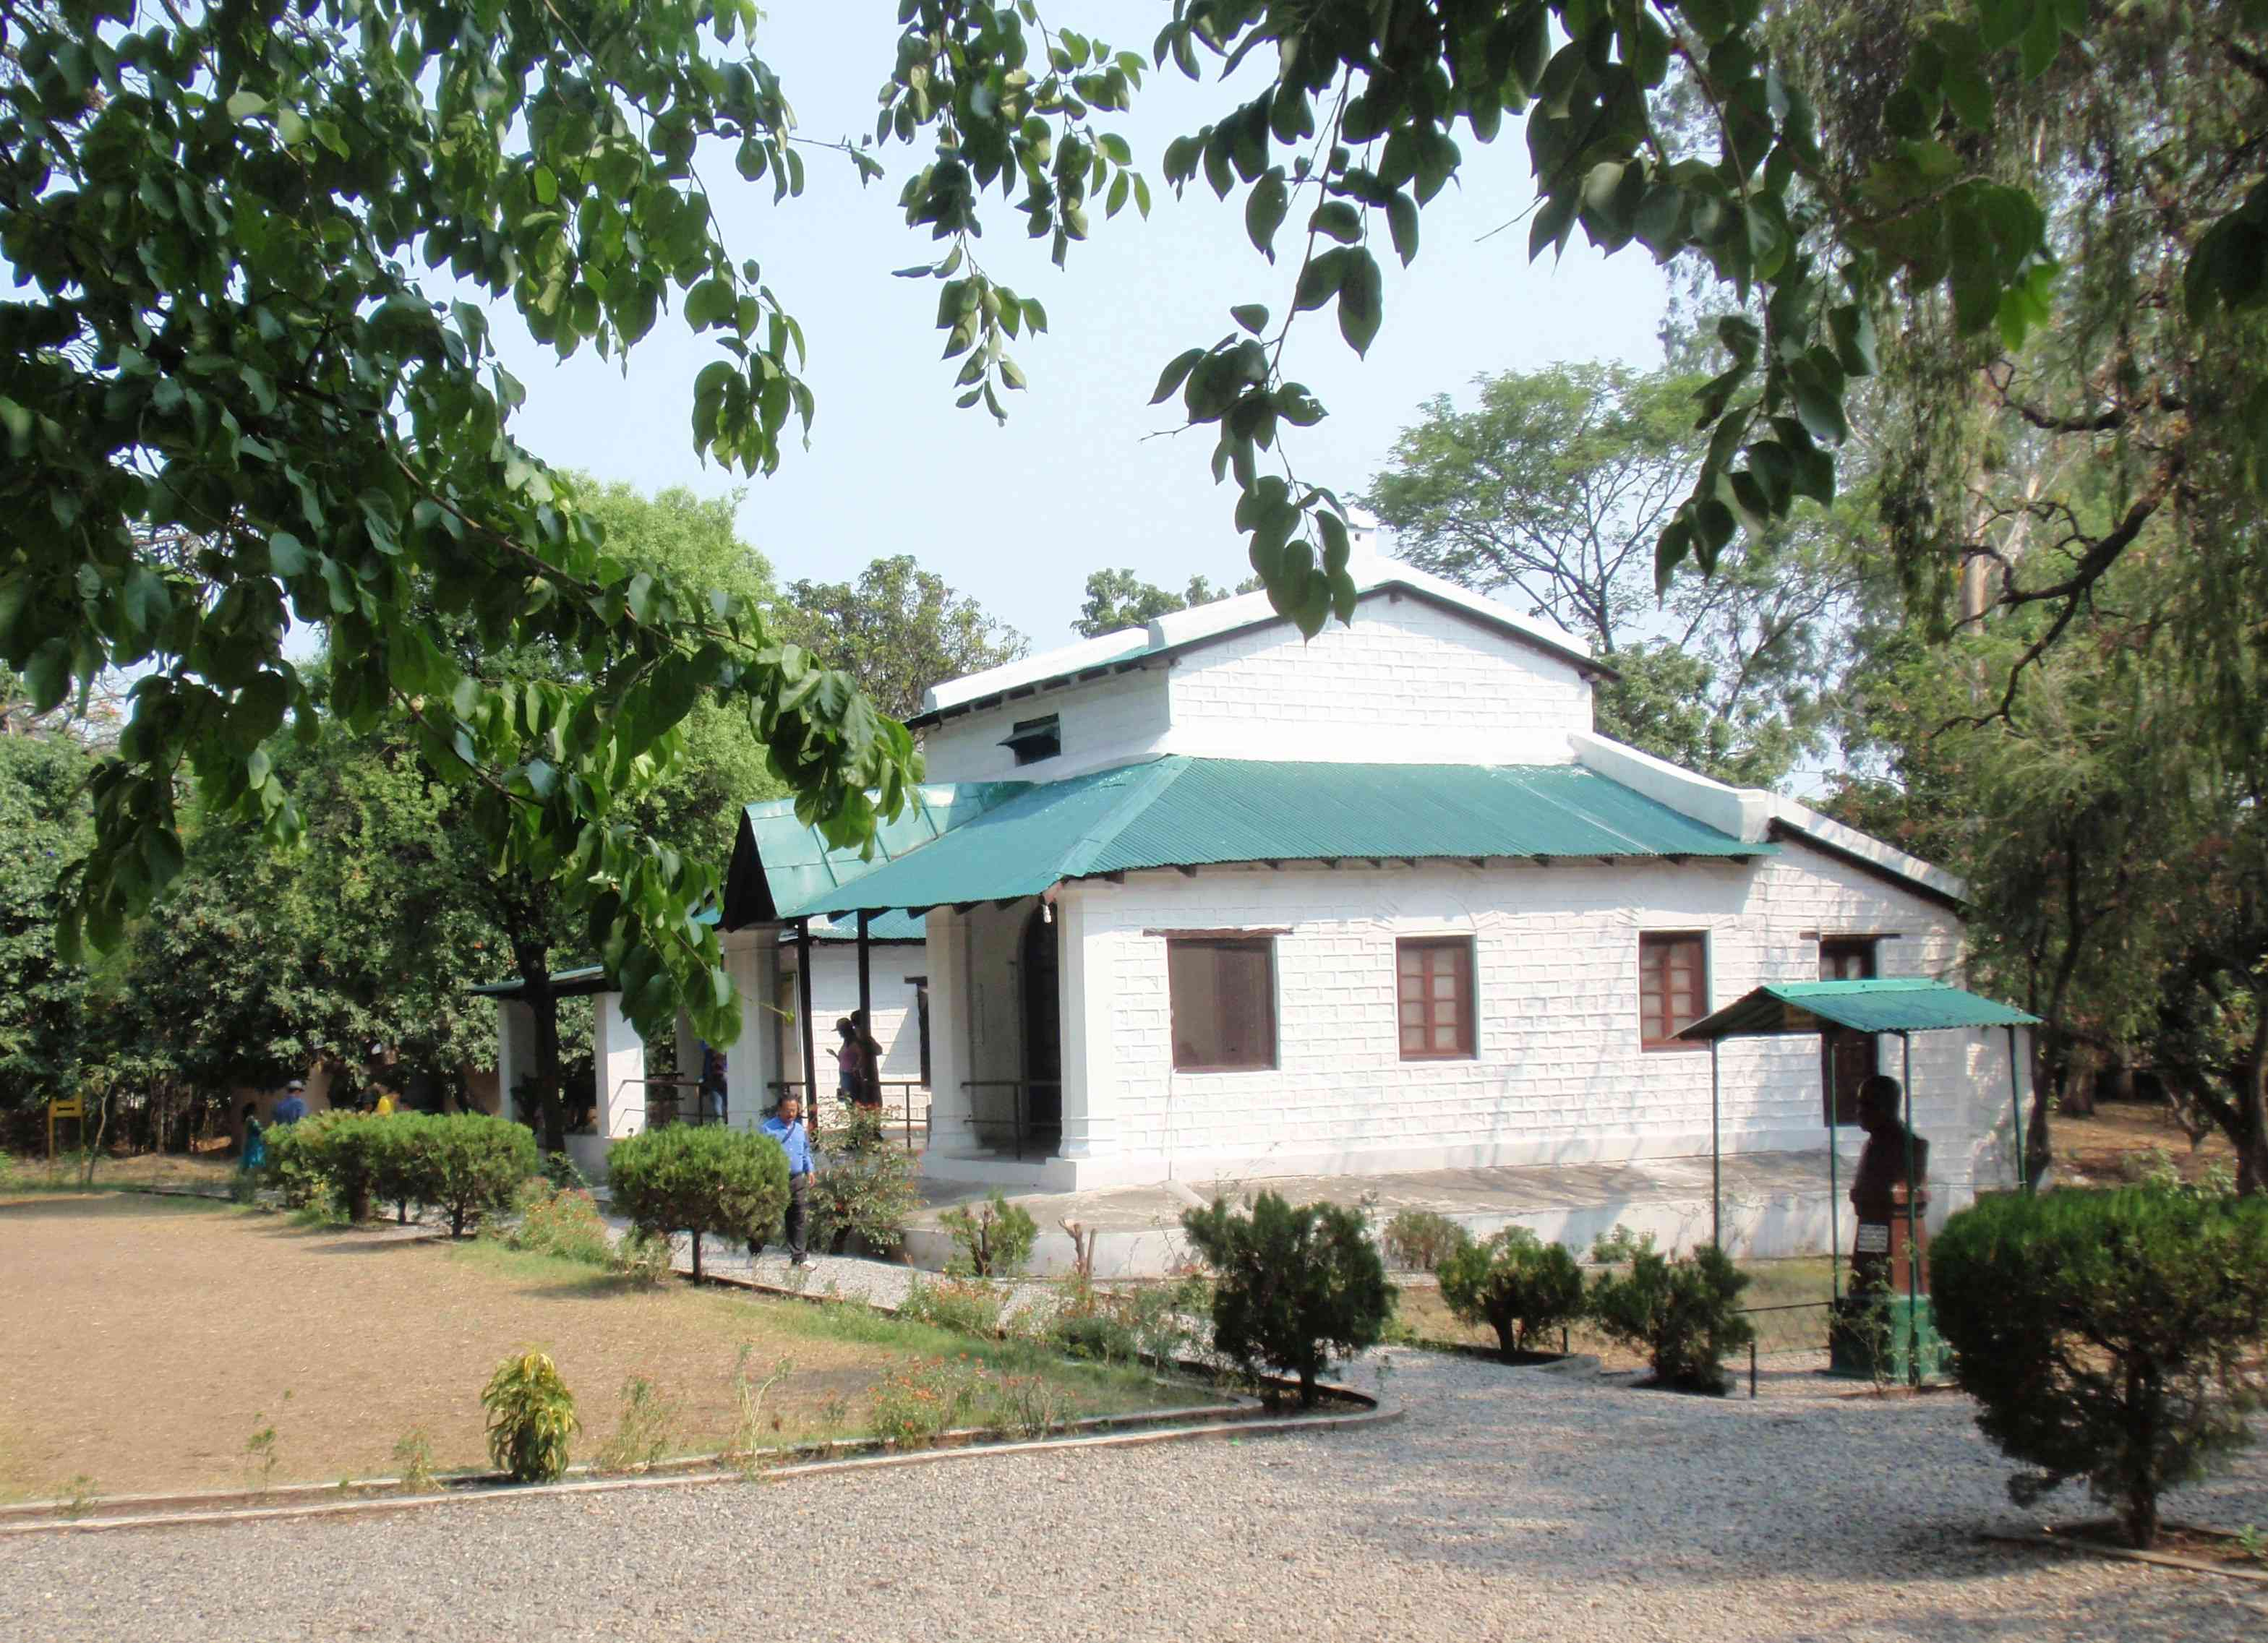 Jim Corbett's bungalow in Kaladhungi presents the image of a typical English bungalow with lawns, hedges and trees